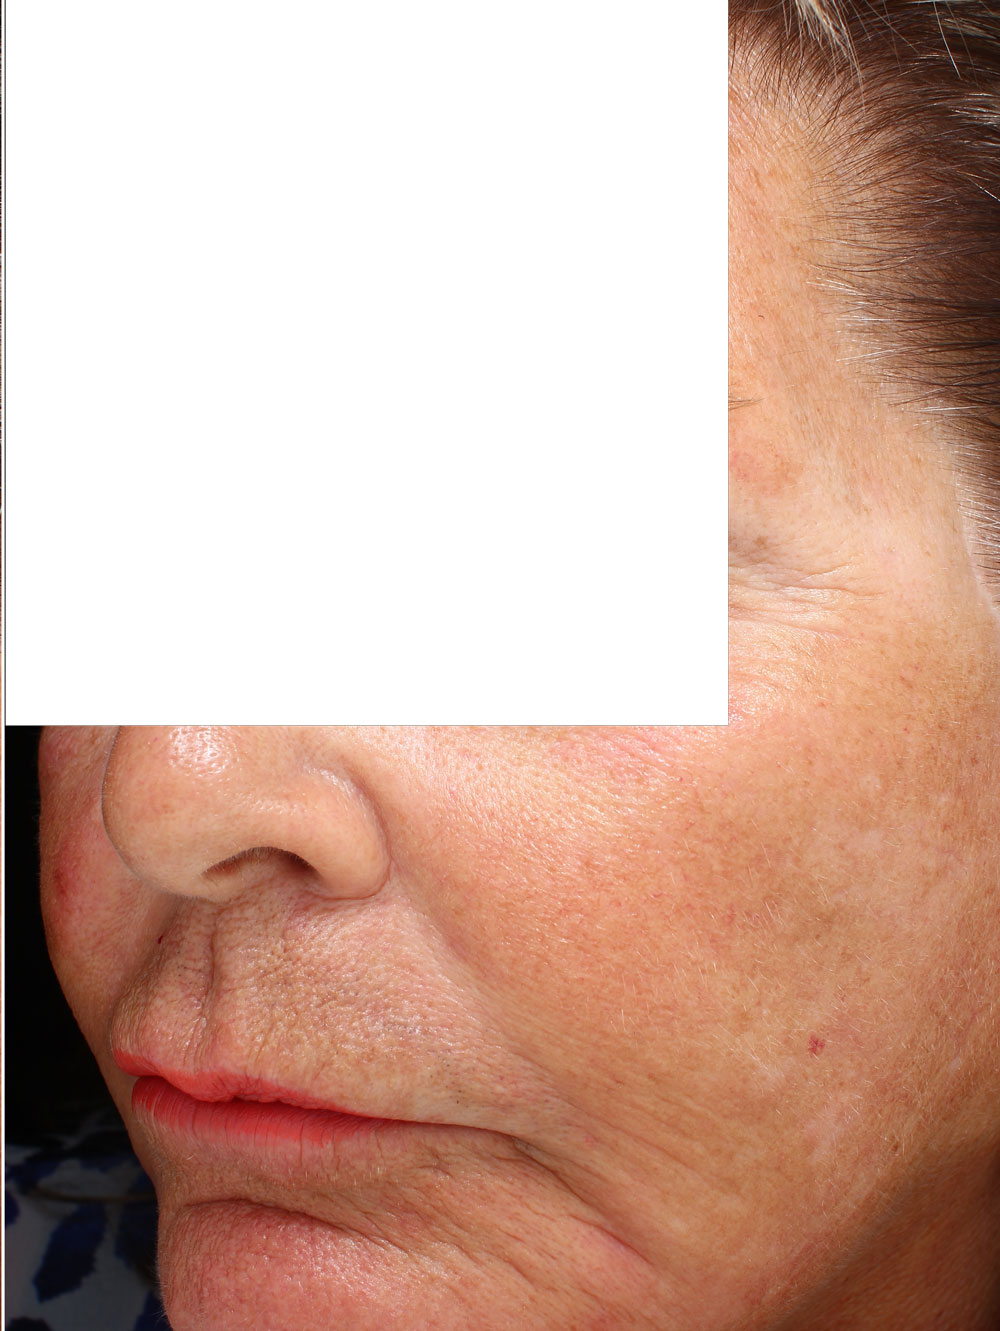 Woman's wrinkles after from Botox treatment before and after procedure provided by Dr. Scott Hernberg of Tomorrow's Wellness Center, NJ's premier med spa.